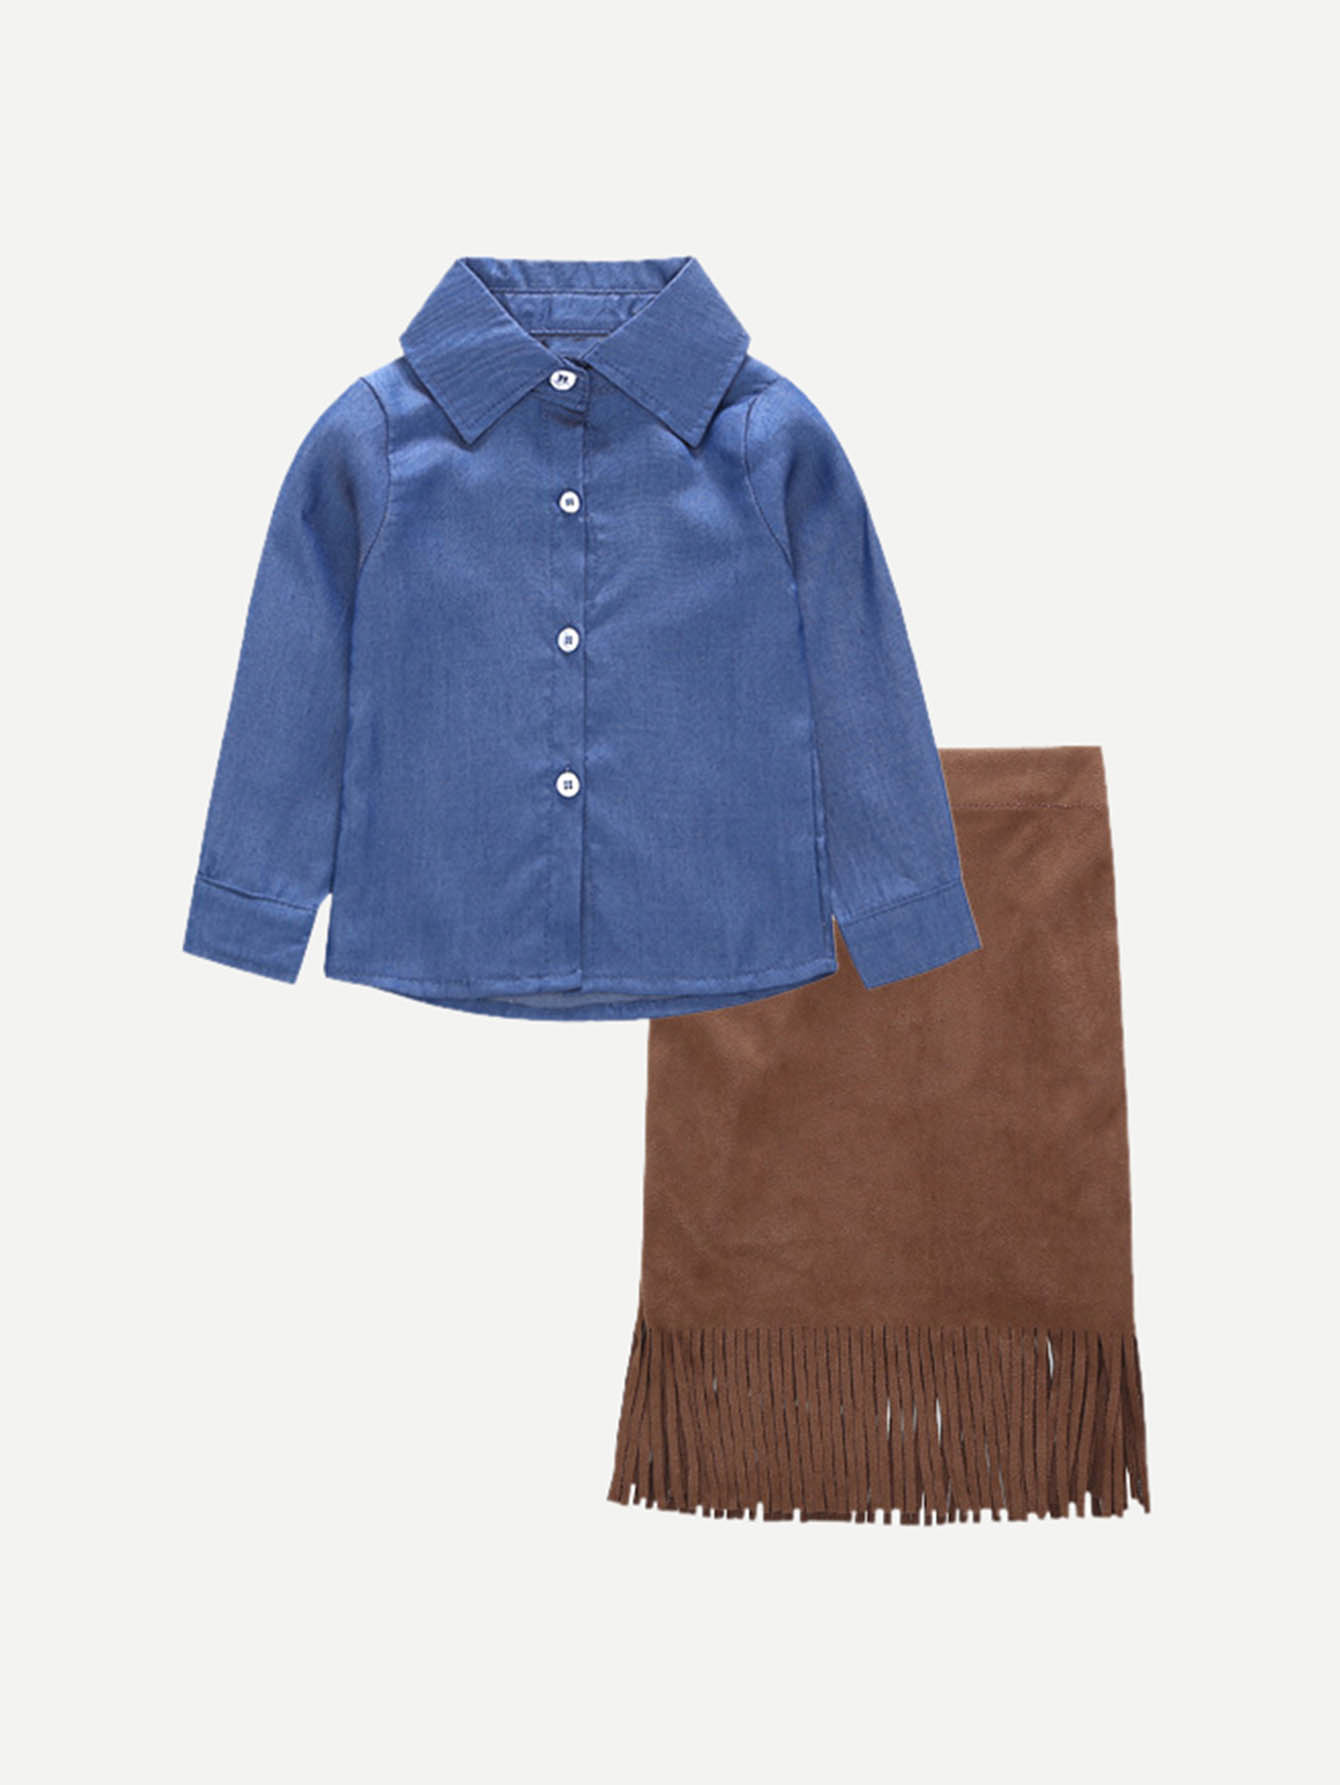 Girls Solid Blouse With Fringe Hem Skirt bioline jato крем маска для контура глаз bioline jato daily ritual balance drp11050 50 мл